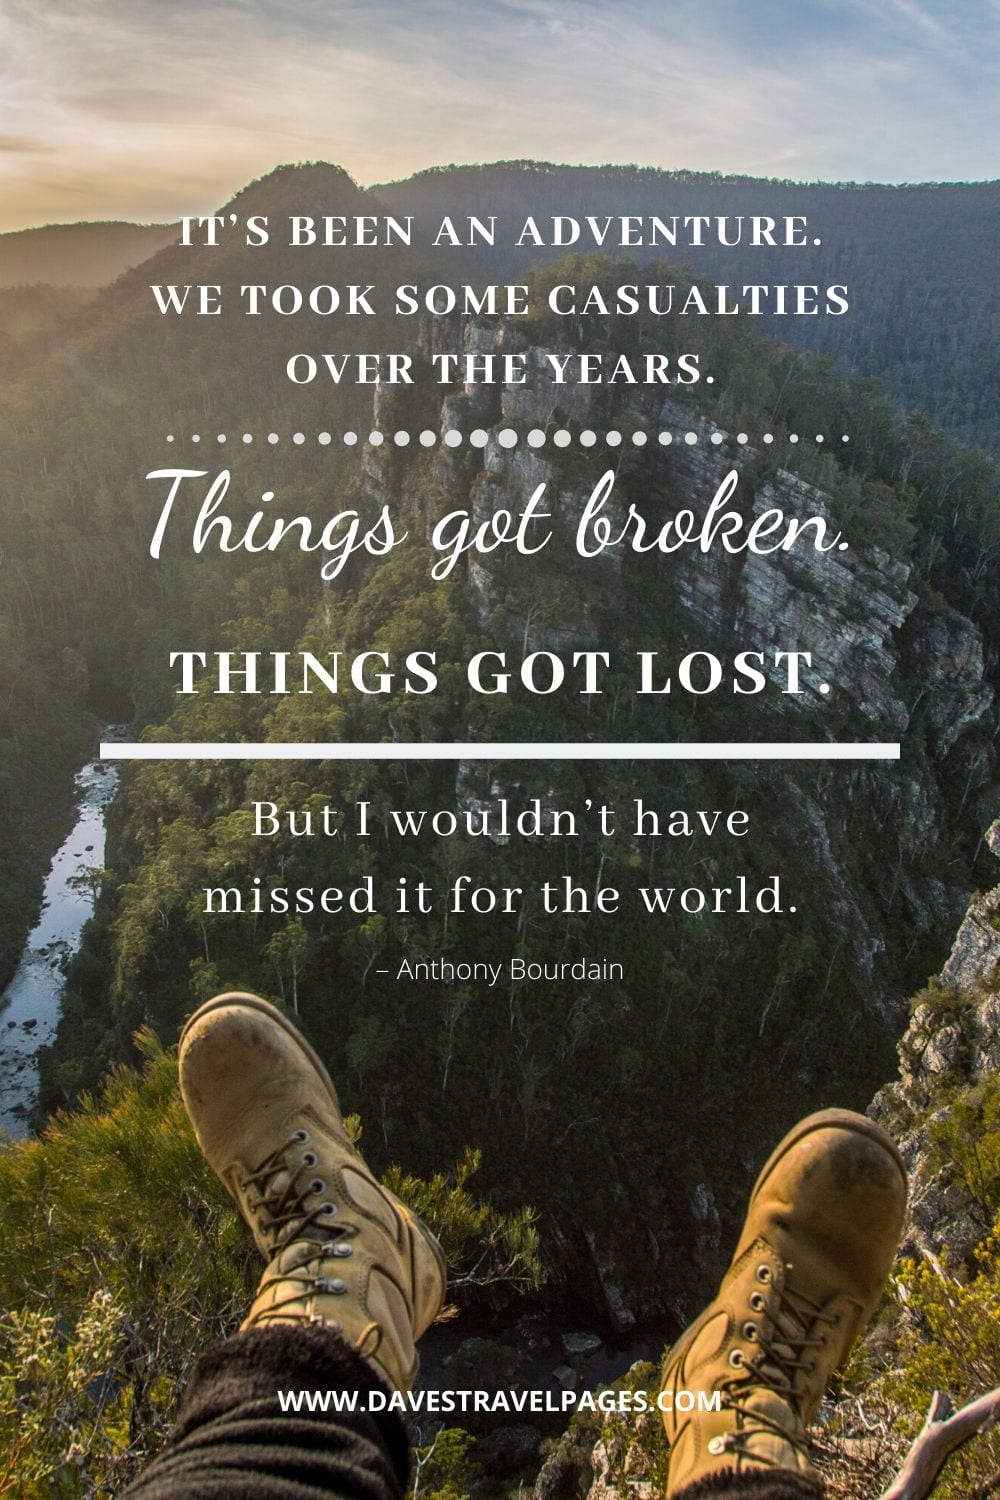 """""""It's been an adventure. We took some casualties over the years. Things got broken. Things got lost. But I wouldn't have missed it for the world."""" – Anthony Bourdain quote"""